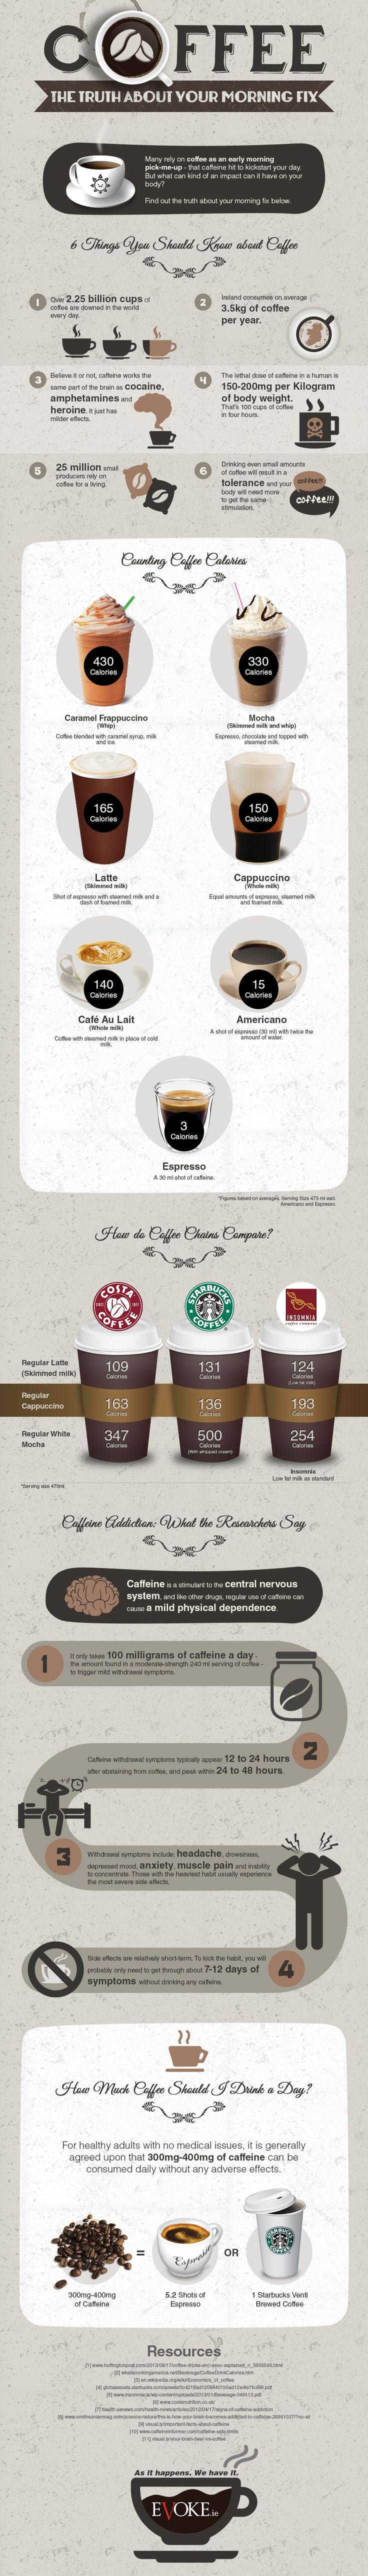 Coffee – The Truth about your Morning Fix Infographic